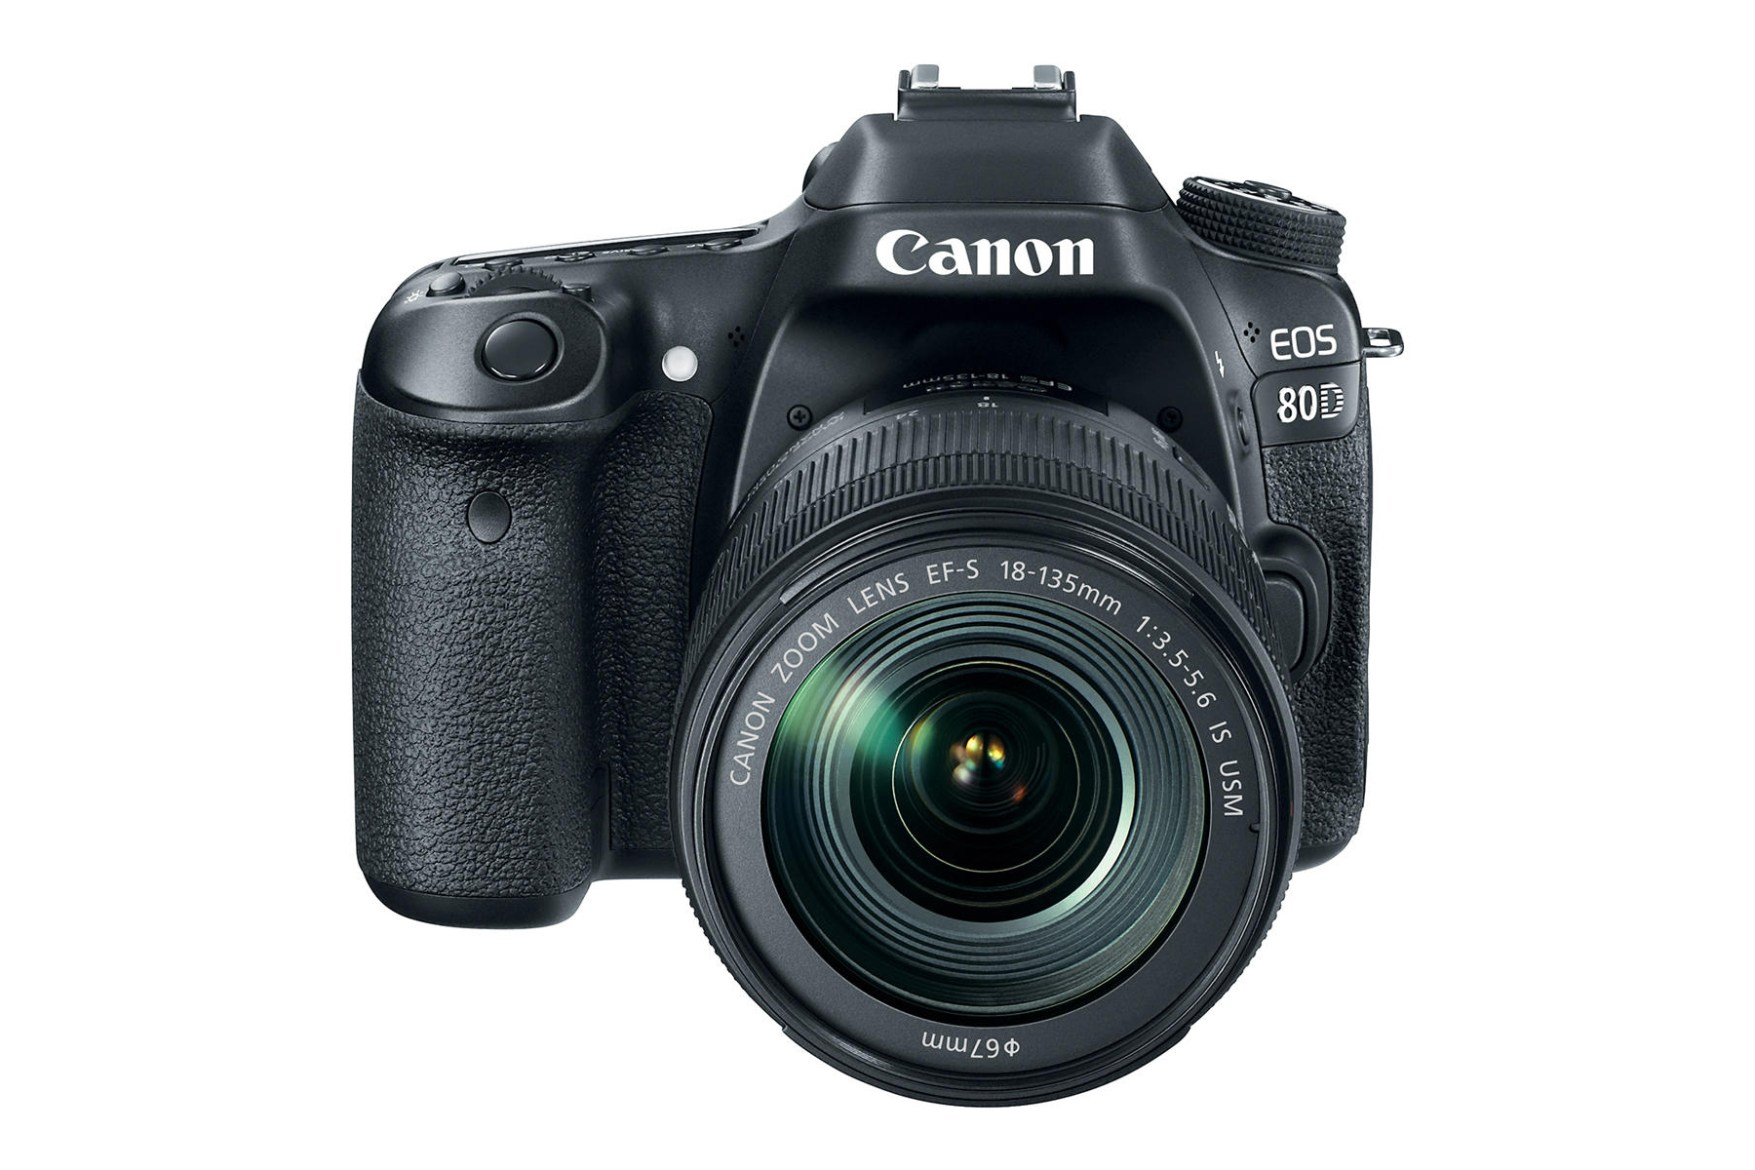 Camera Dslr Camera Megapixel canon eos 80d dslr camera hypebeast 1 of 6